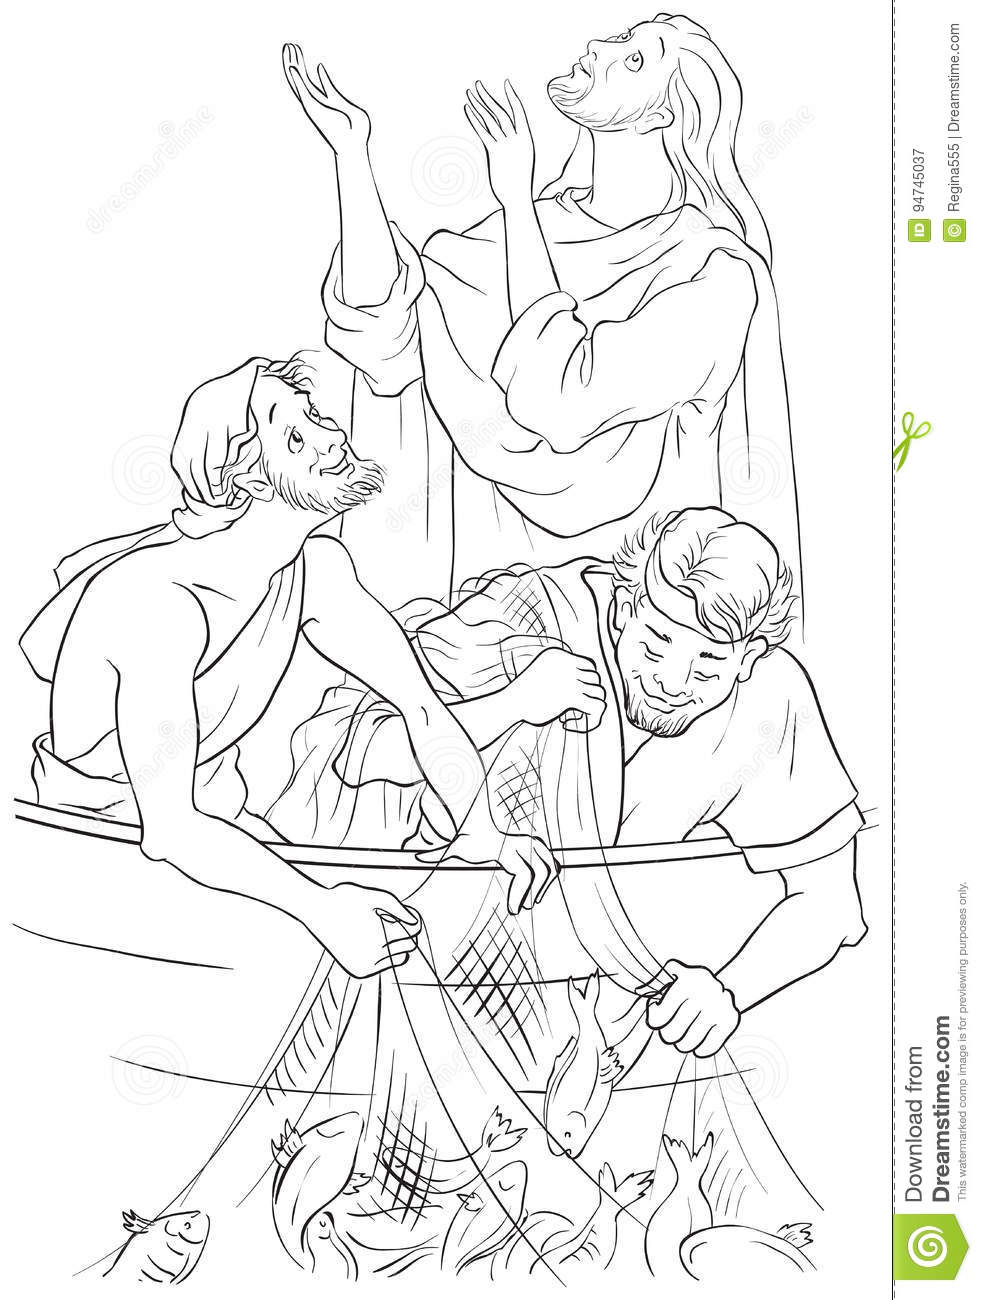 jesus and the miraculous catch of fish coloring page stock vector